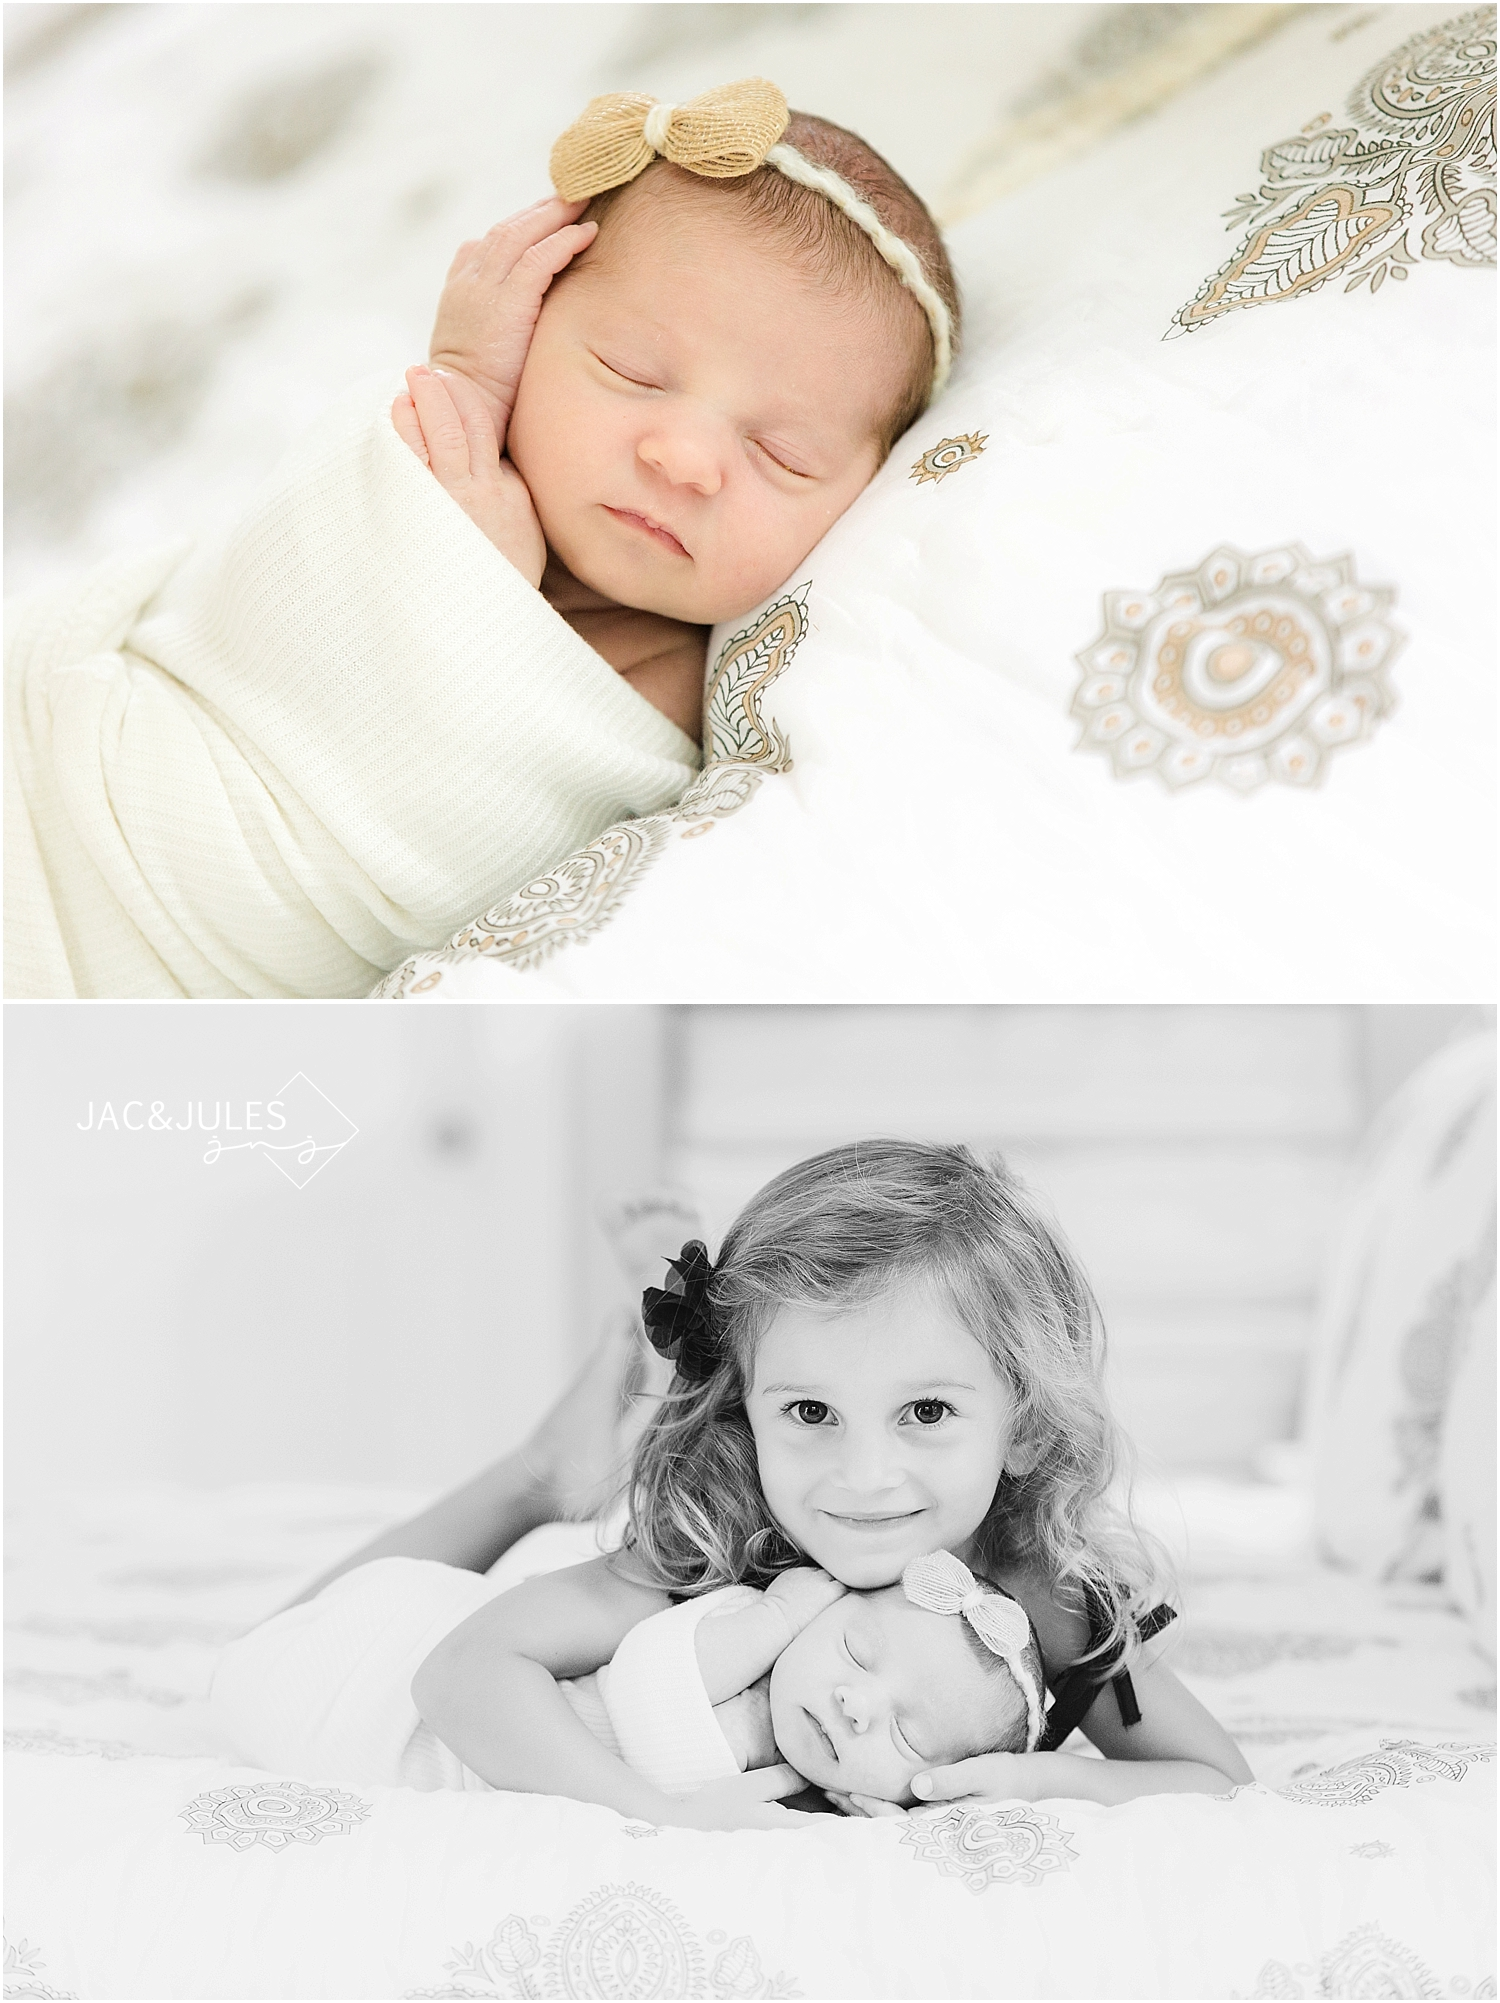 jacnjules photograph a newborn baby girl and her sister in Toms River, NJ